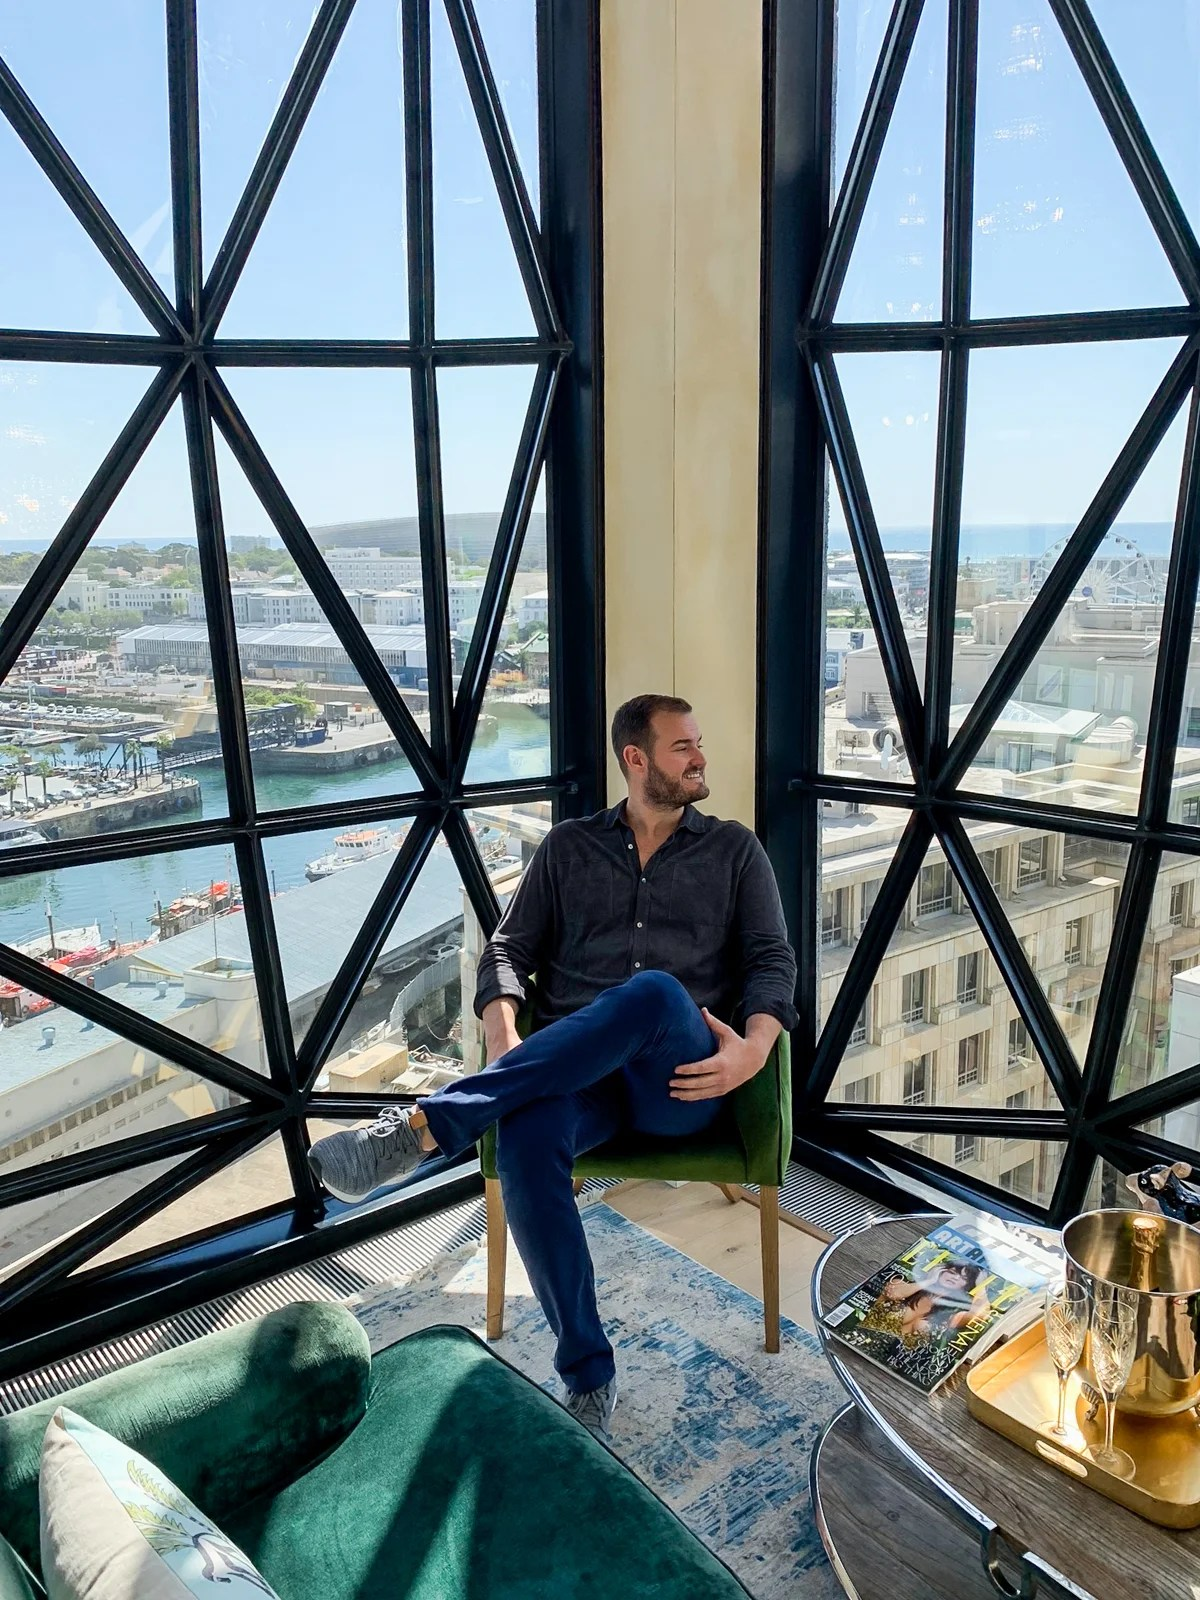 The World's Most Instagrammable Hotel? A Review of The Silo in Cape Town, South Africa